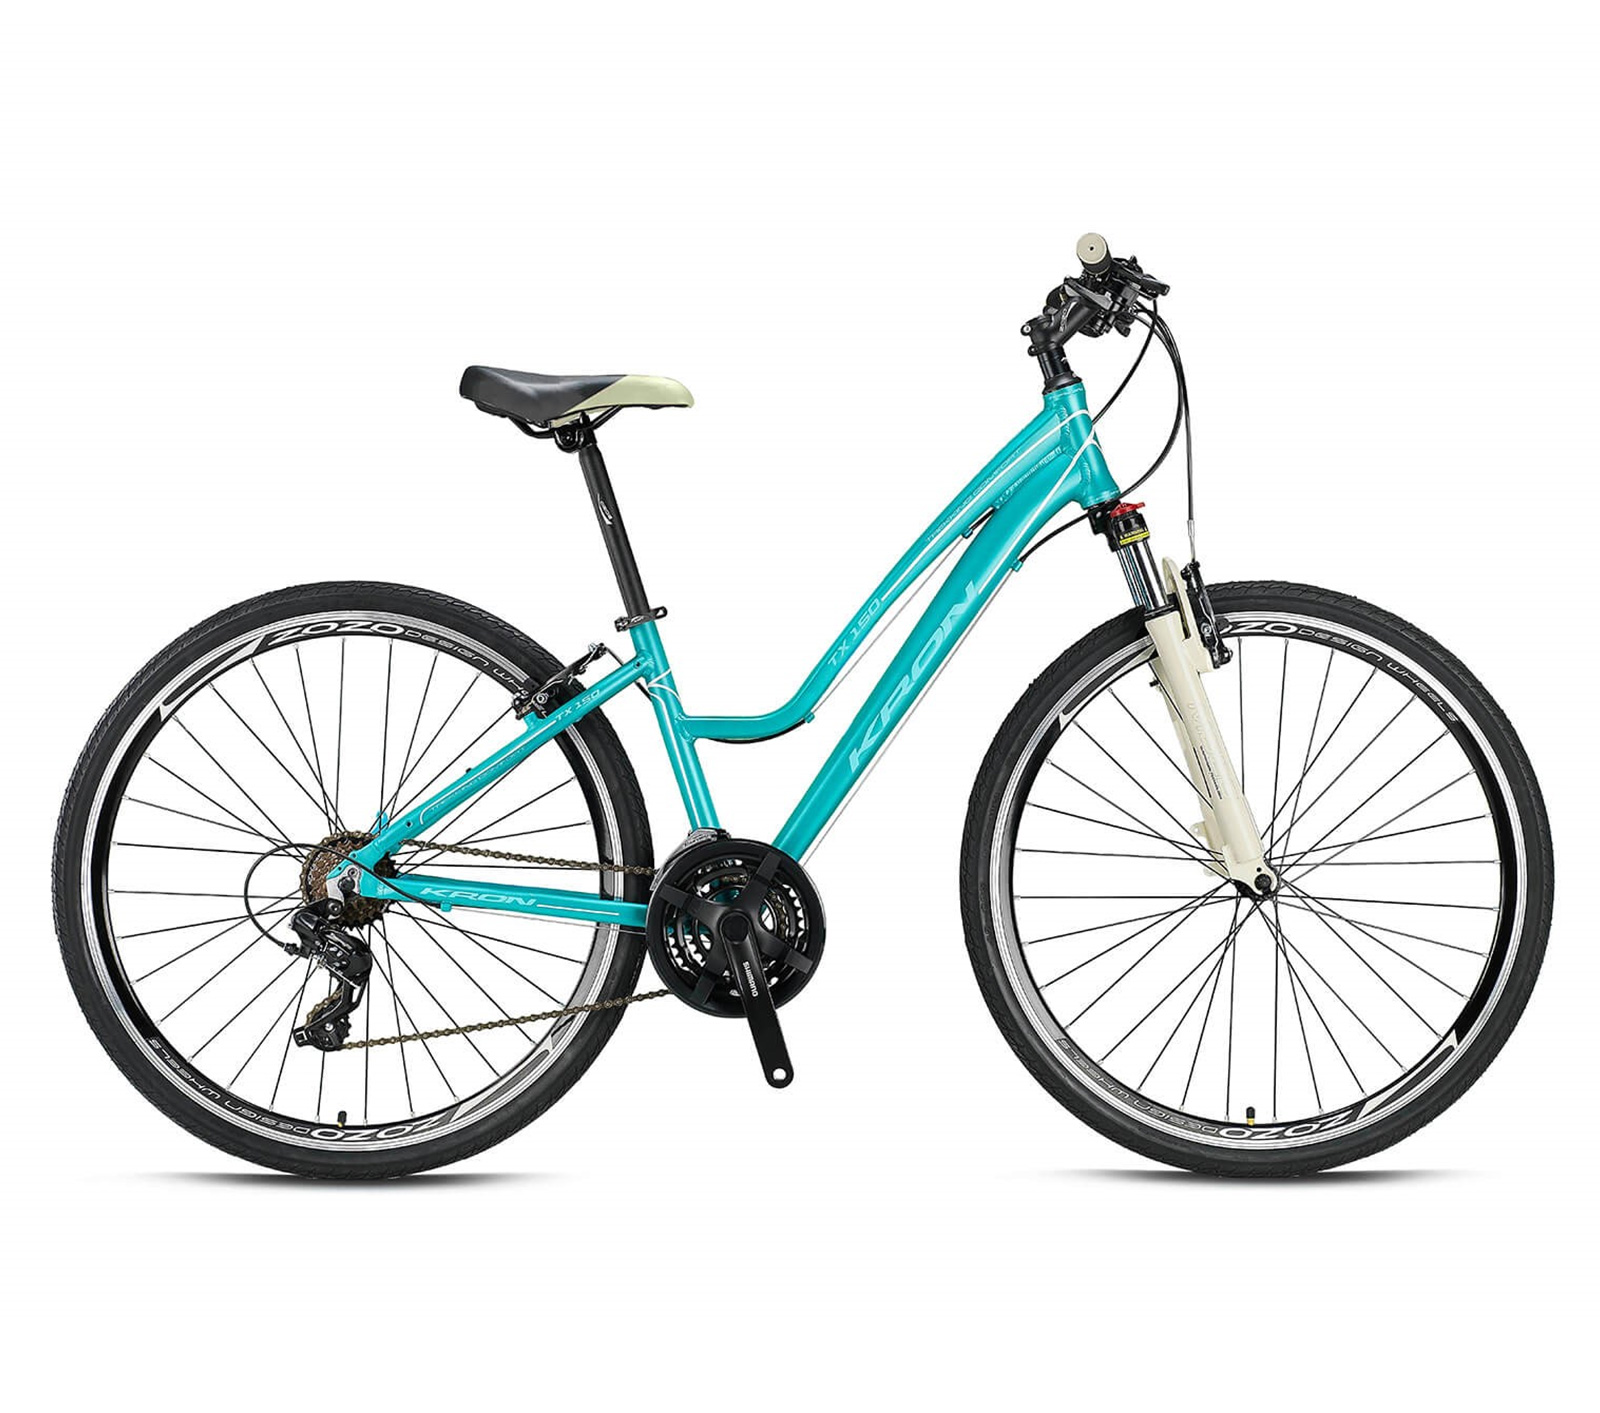 KRON TX 150 - 28' CITY BIKE - LADY - 17' - 24 Vites - V-Fren